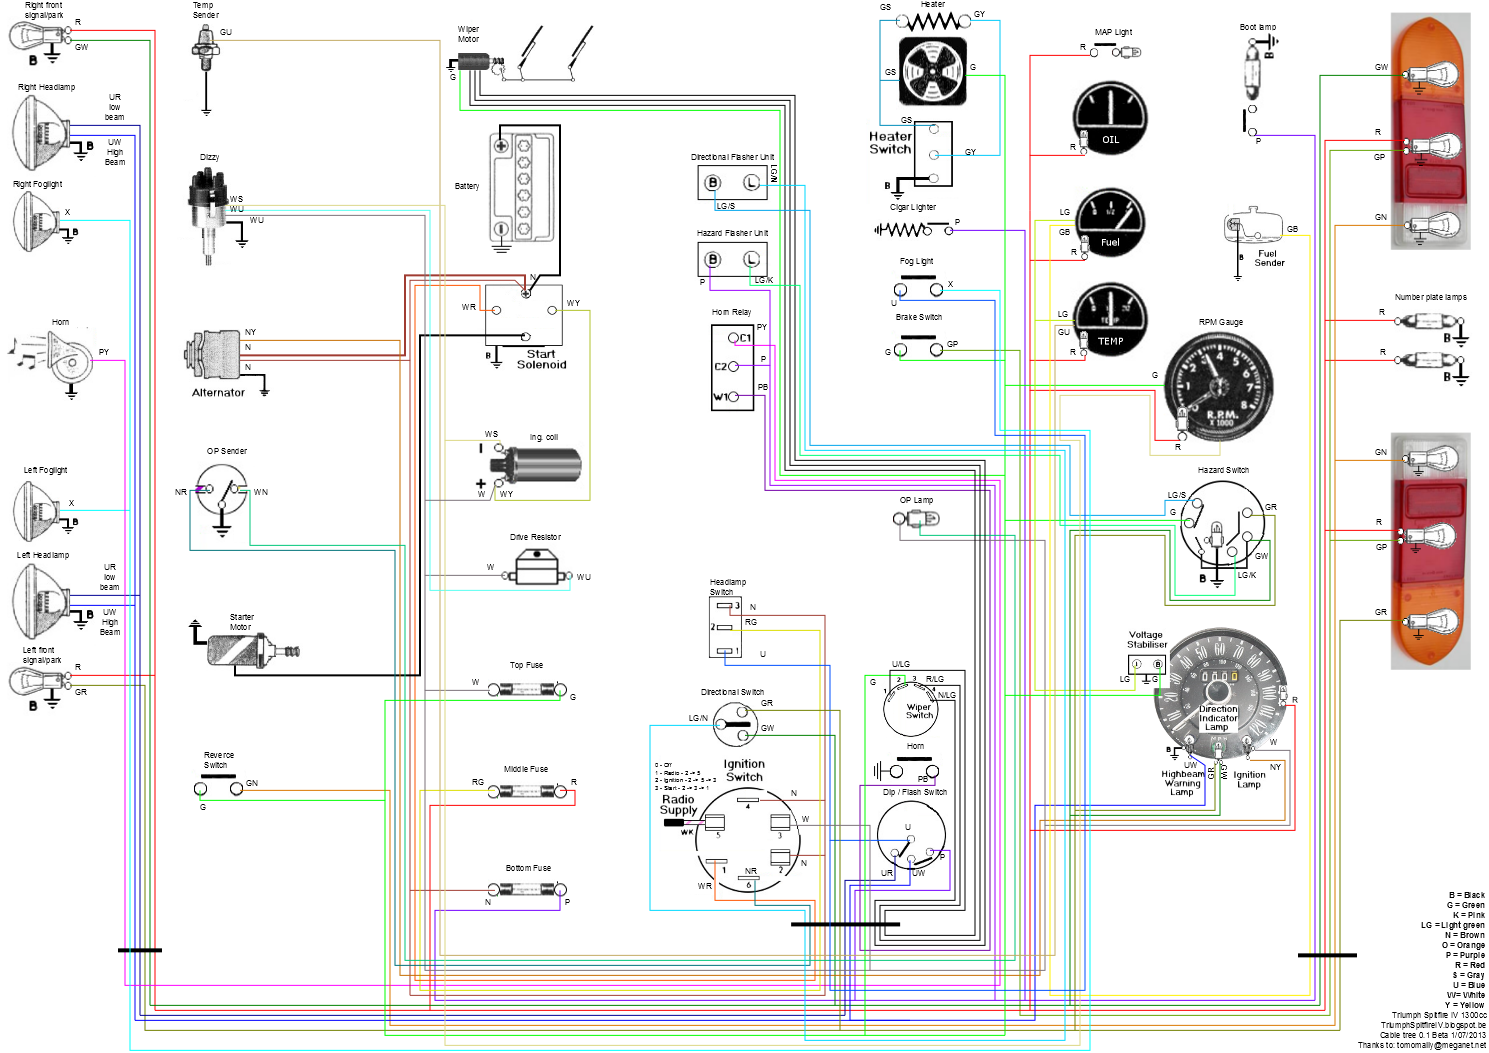 spitfire iv wiring diagram spitfire mkiv wiring diagram how to library the triumph experience triumph spitfire mk1 wiring diagram at virtualis.co